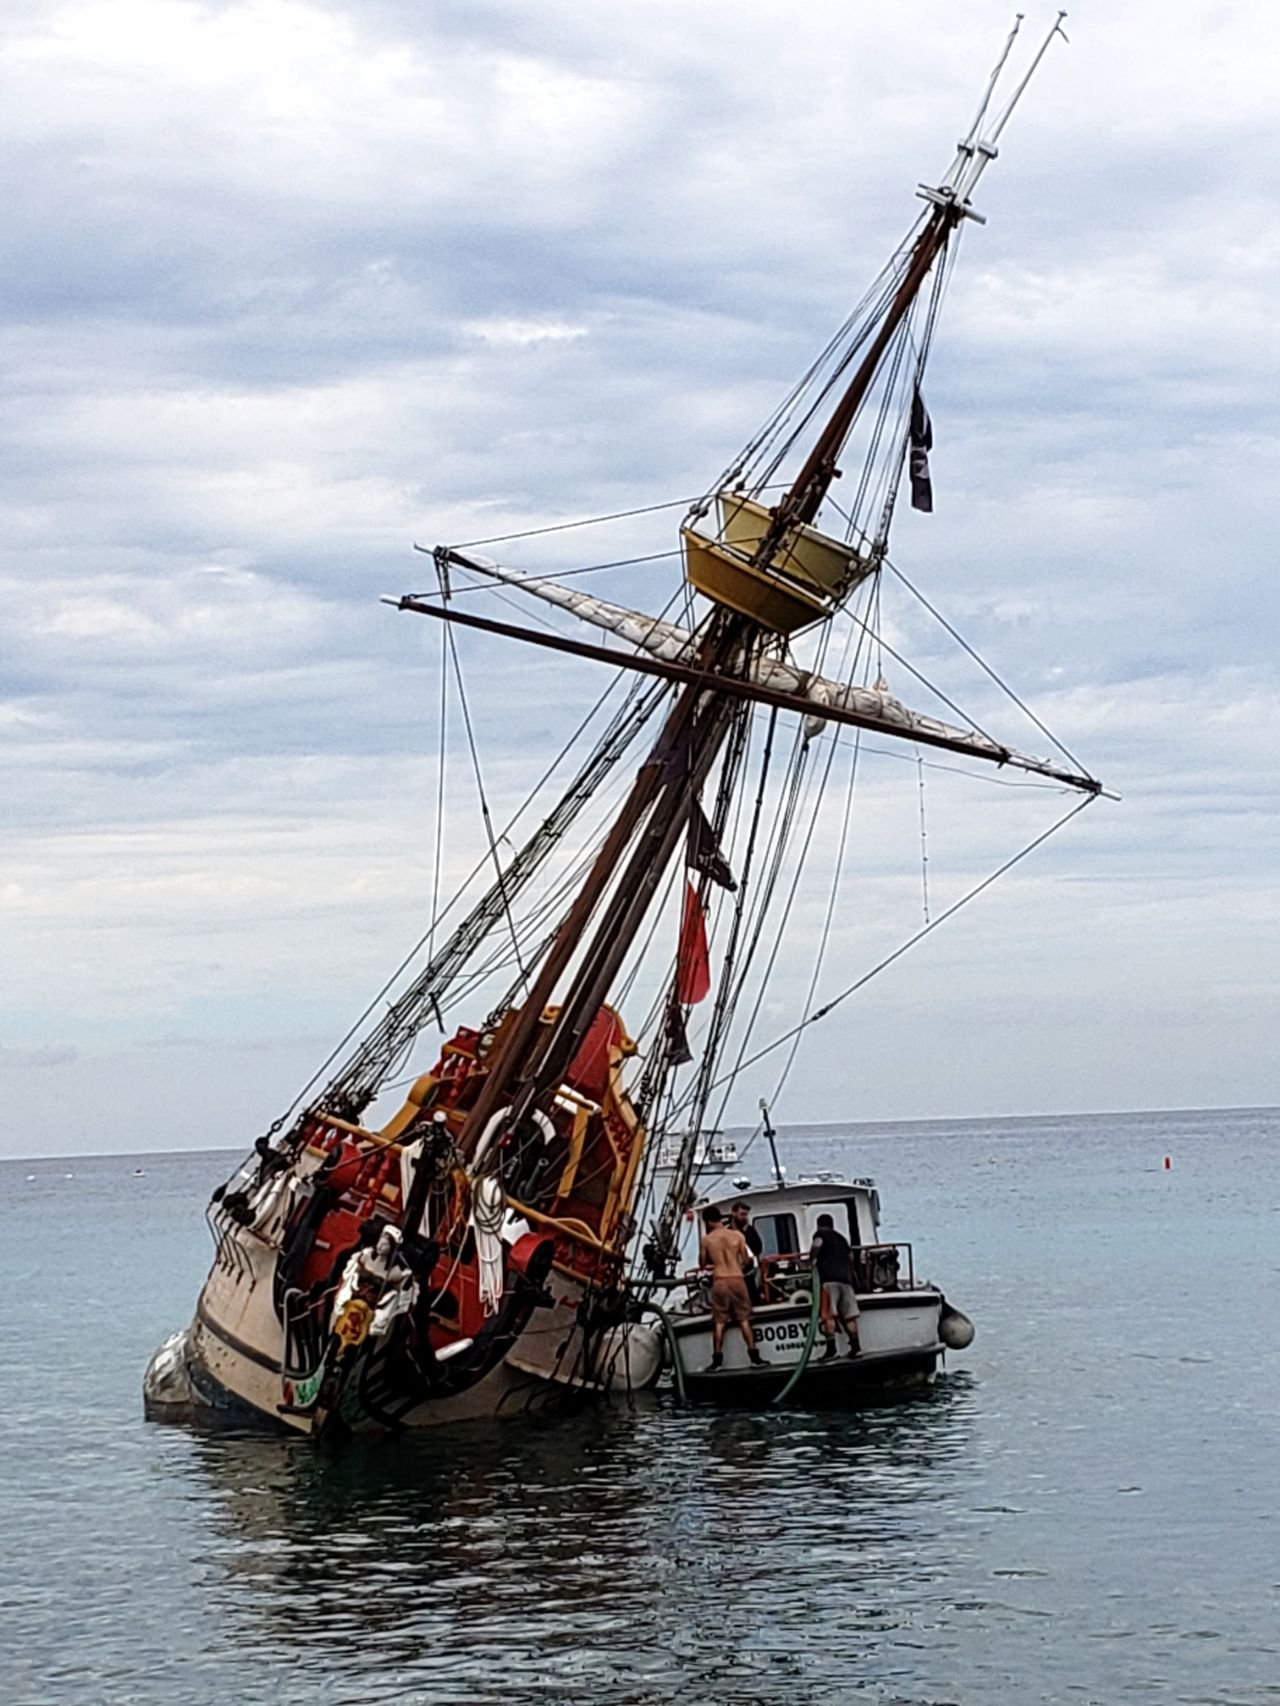 The Sinking Pirate Ship